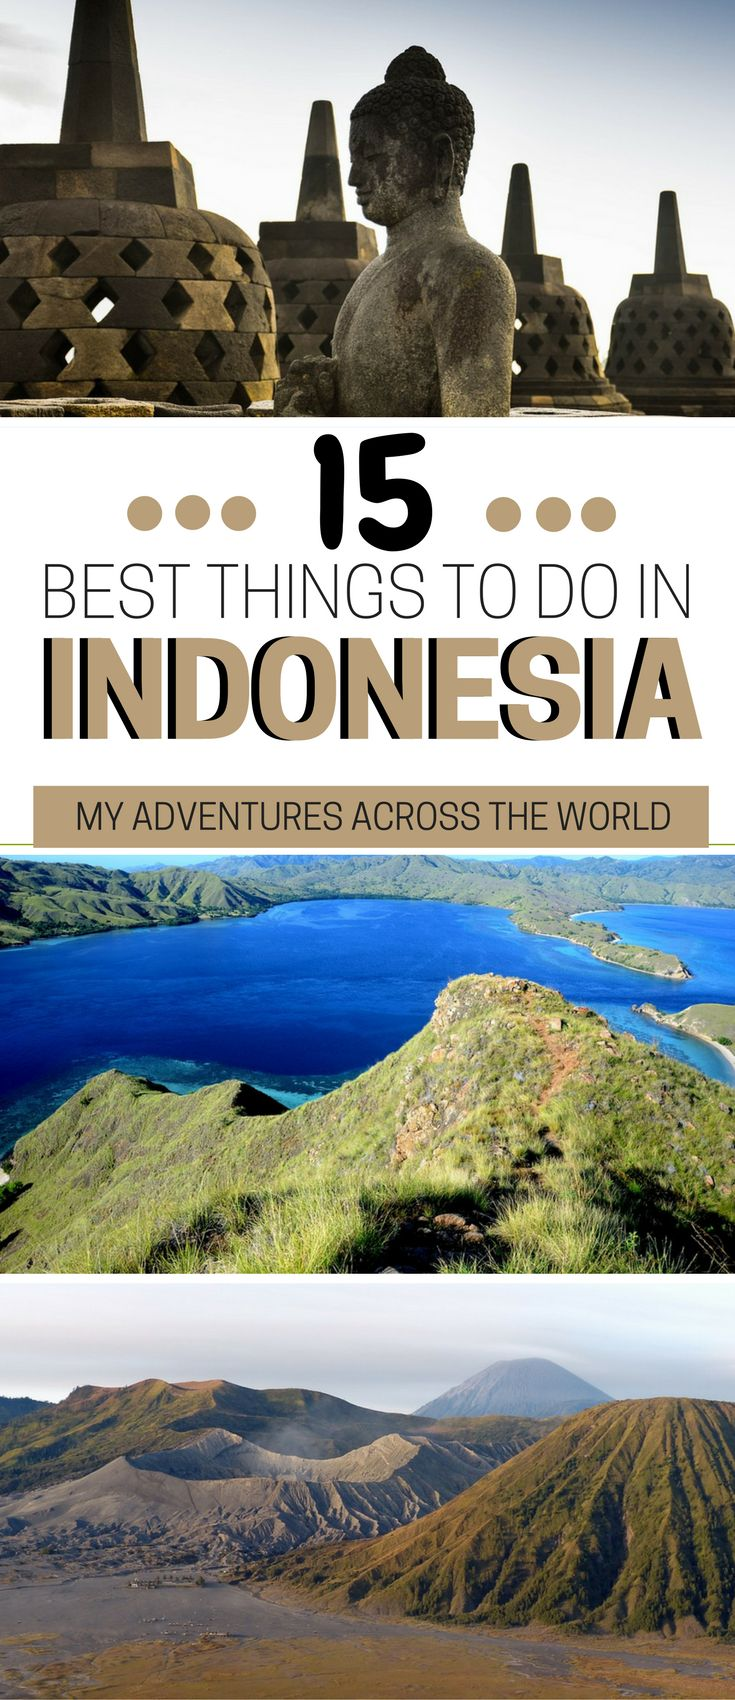 Temples, beautiful beaches, Komodo dragons and volcanoes... Indonesia is much more than Bali! if you are wodnering what to do in indonesia, check out the 15 best things to do in Indonesia + Indonesia travel tips and a list of the most beautiful places to visit #Indonesia #Indonesiatrip - via @clautavani